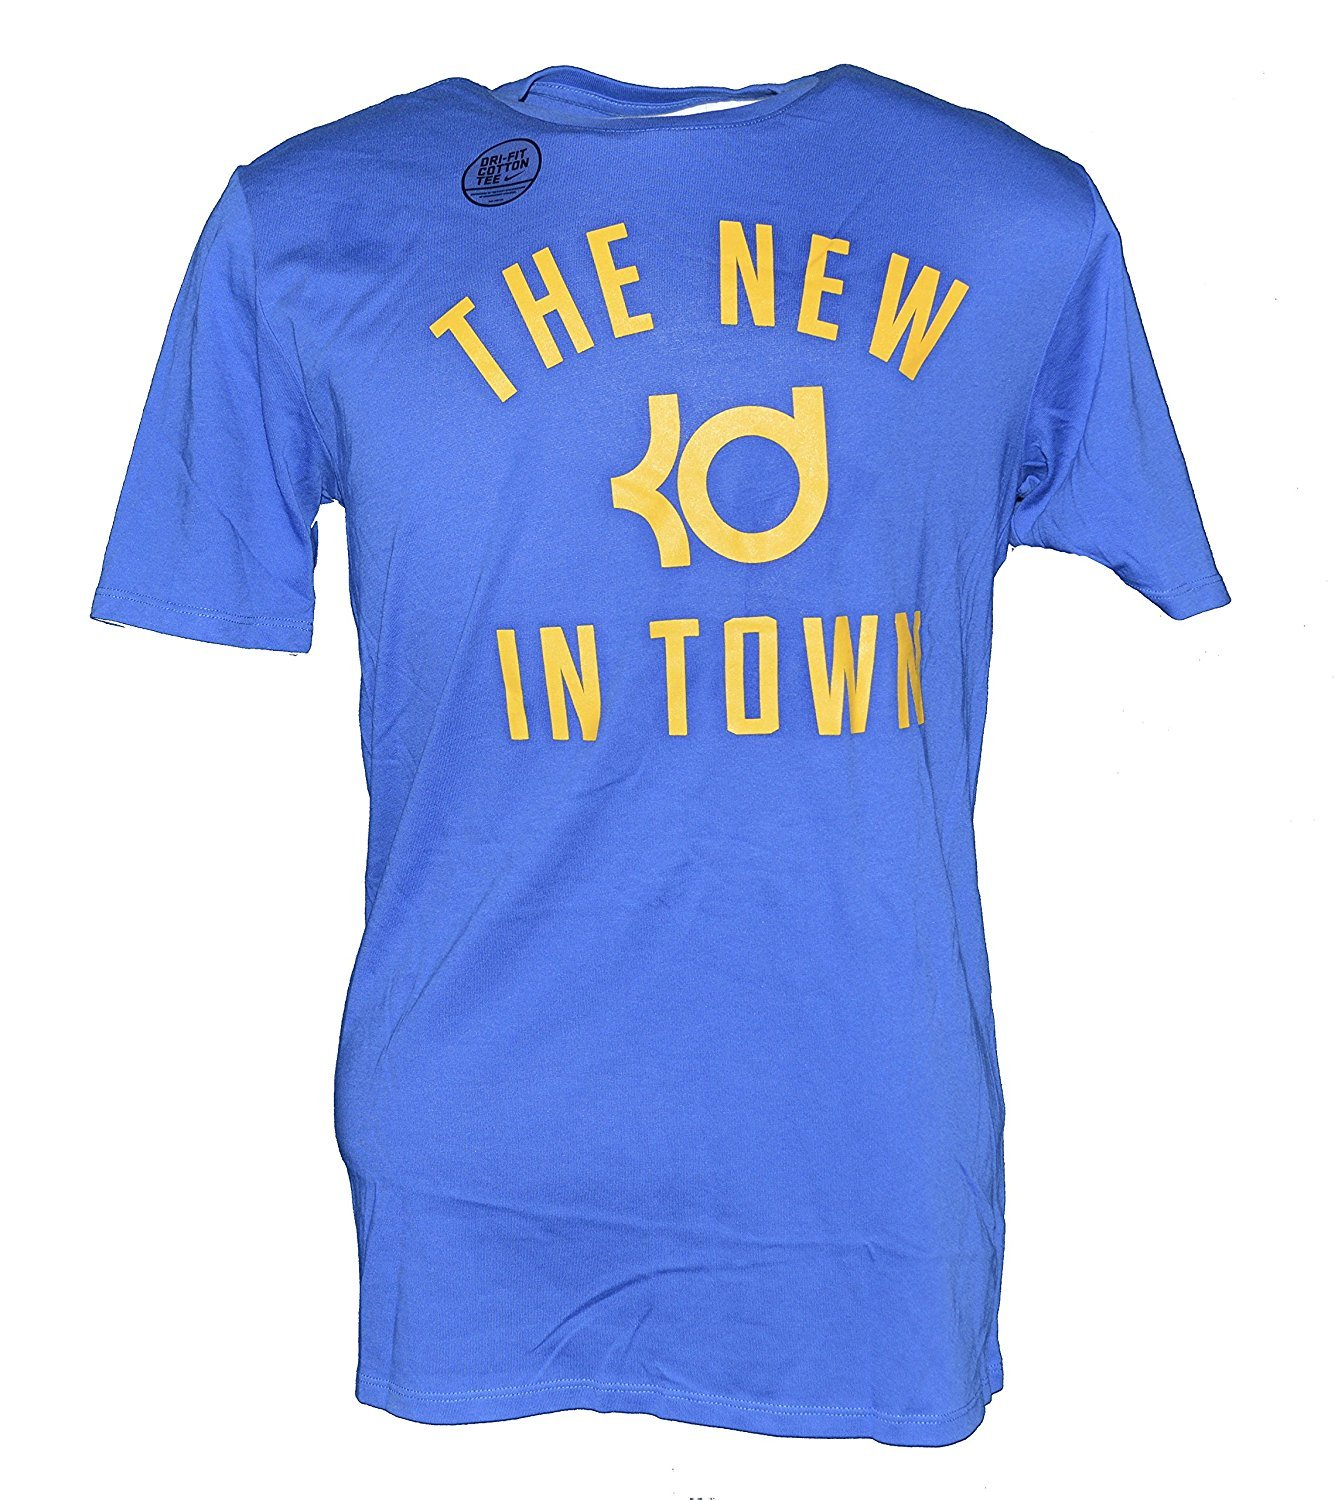 check out 9d156 129d5 Amazon.com: Nike Men's The New KD In Town Golden State ...